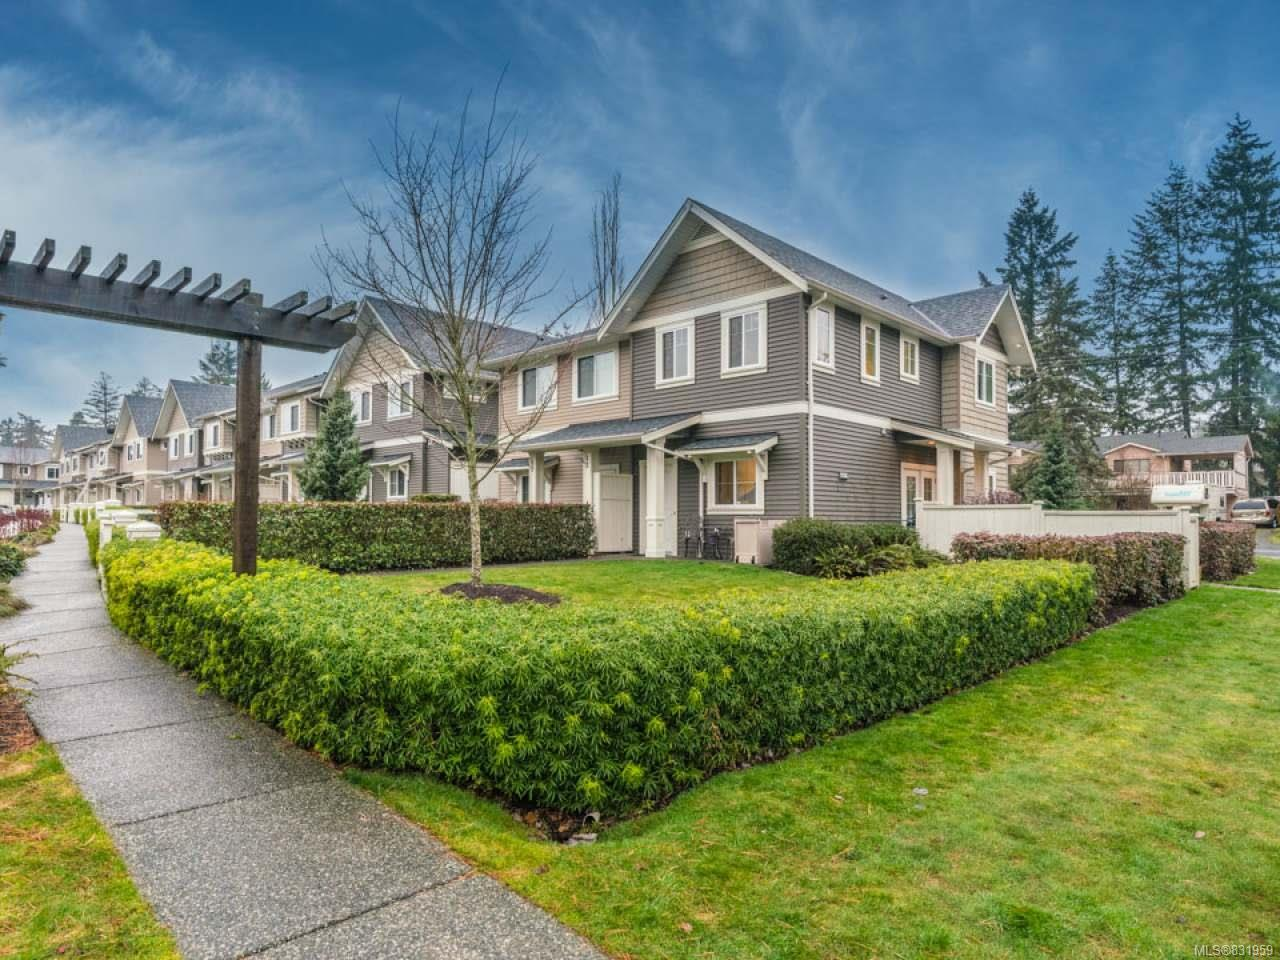 FEATURED LISTING: 101 - 1675 Crescent View Dr NANAIMO